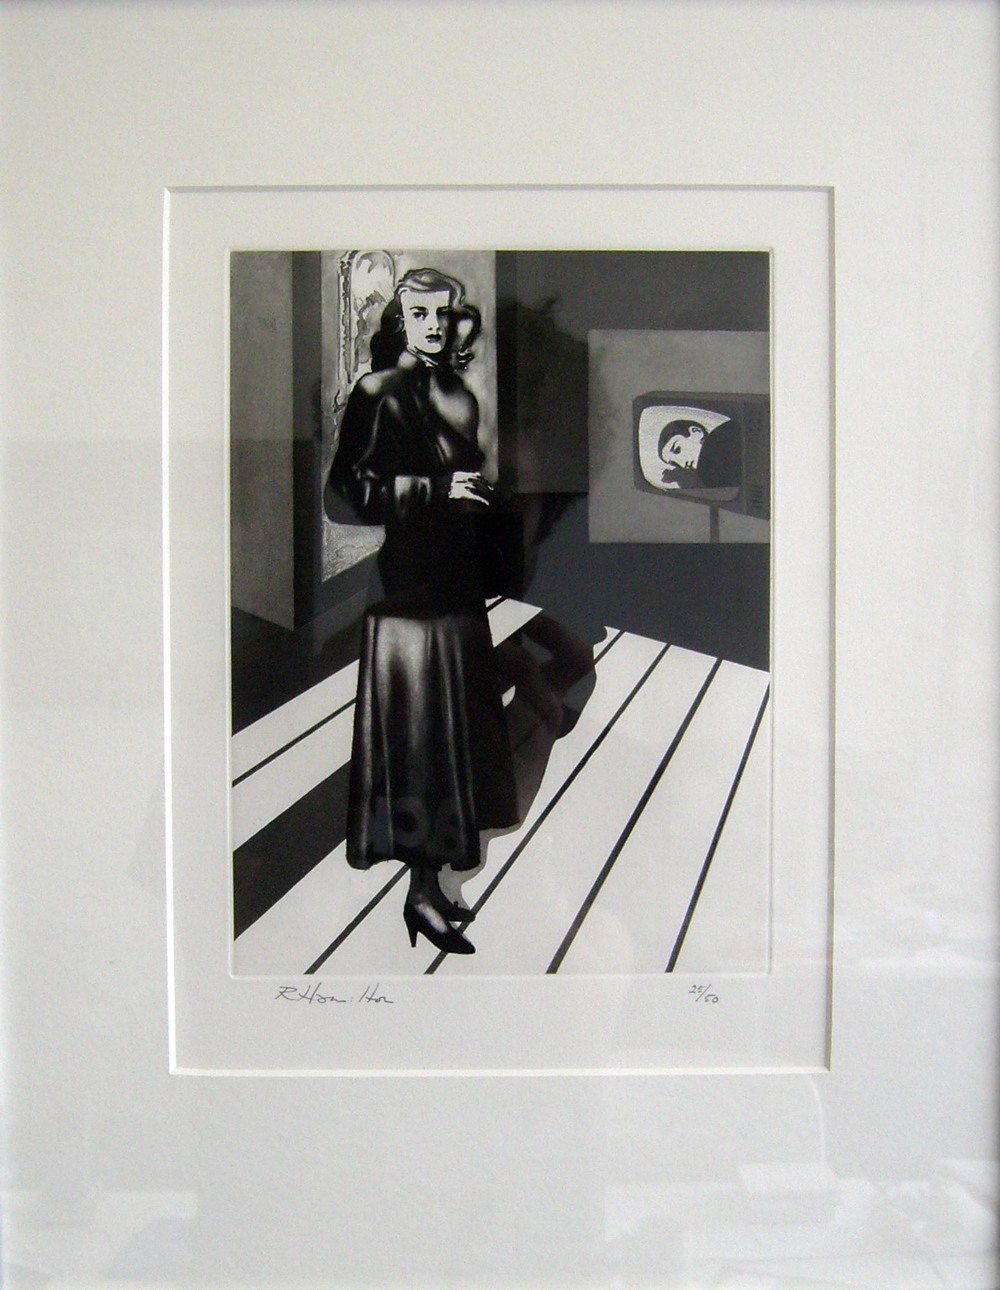 Richard Hamilton Patricia Knight III 1982 Soft, Lift Ground and Step Bite Aquatint Paper 38 x 28 cm/ Image 23.7 x 17.6 cm